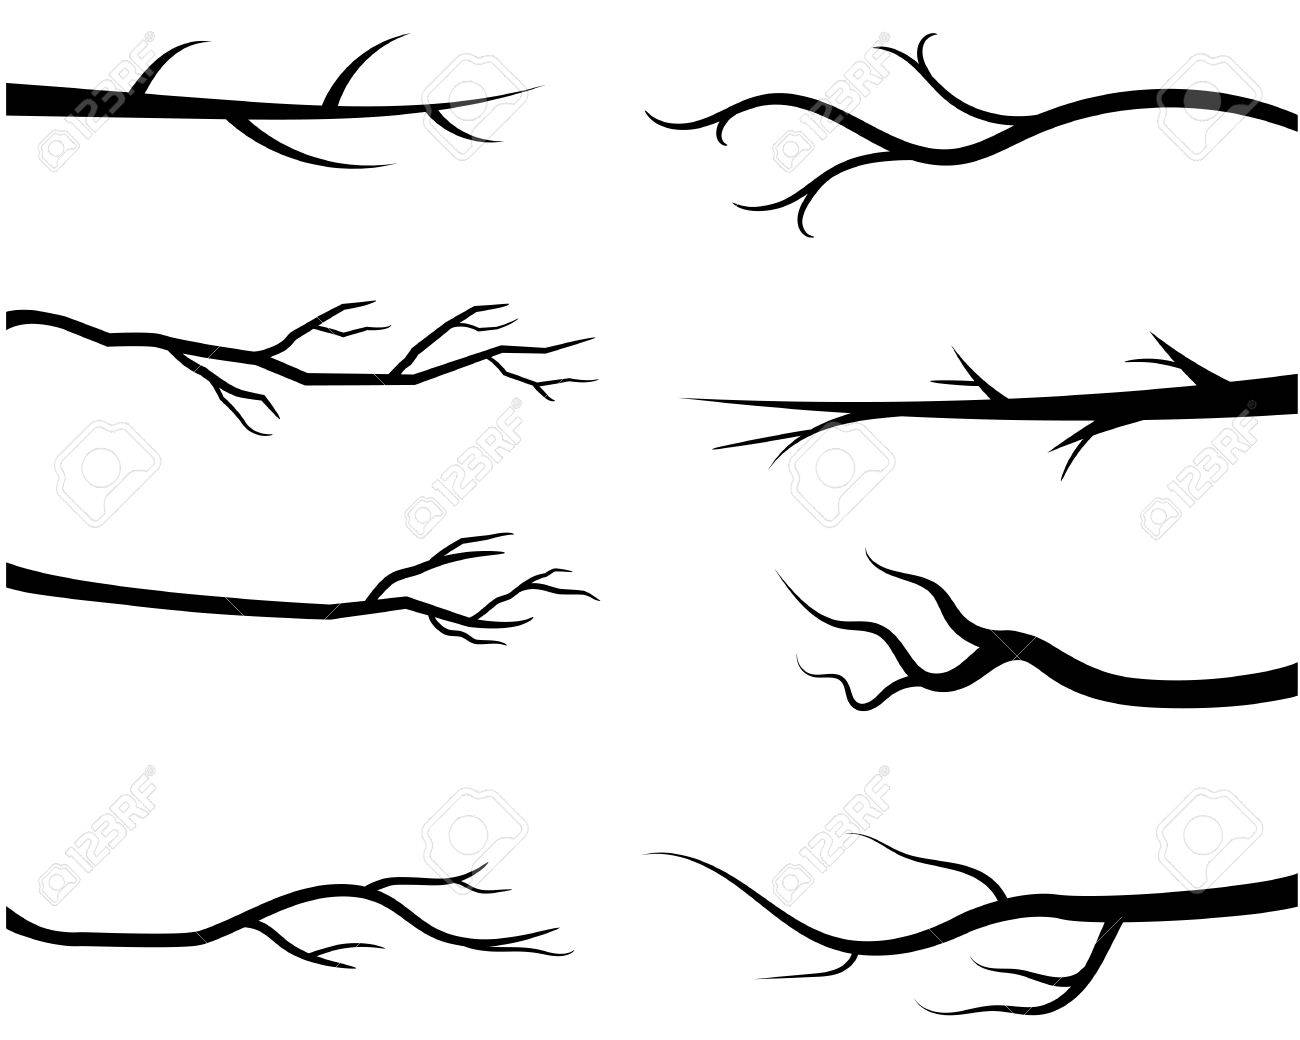 Tree Branch Silhouette Vector.